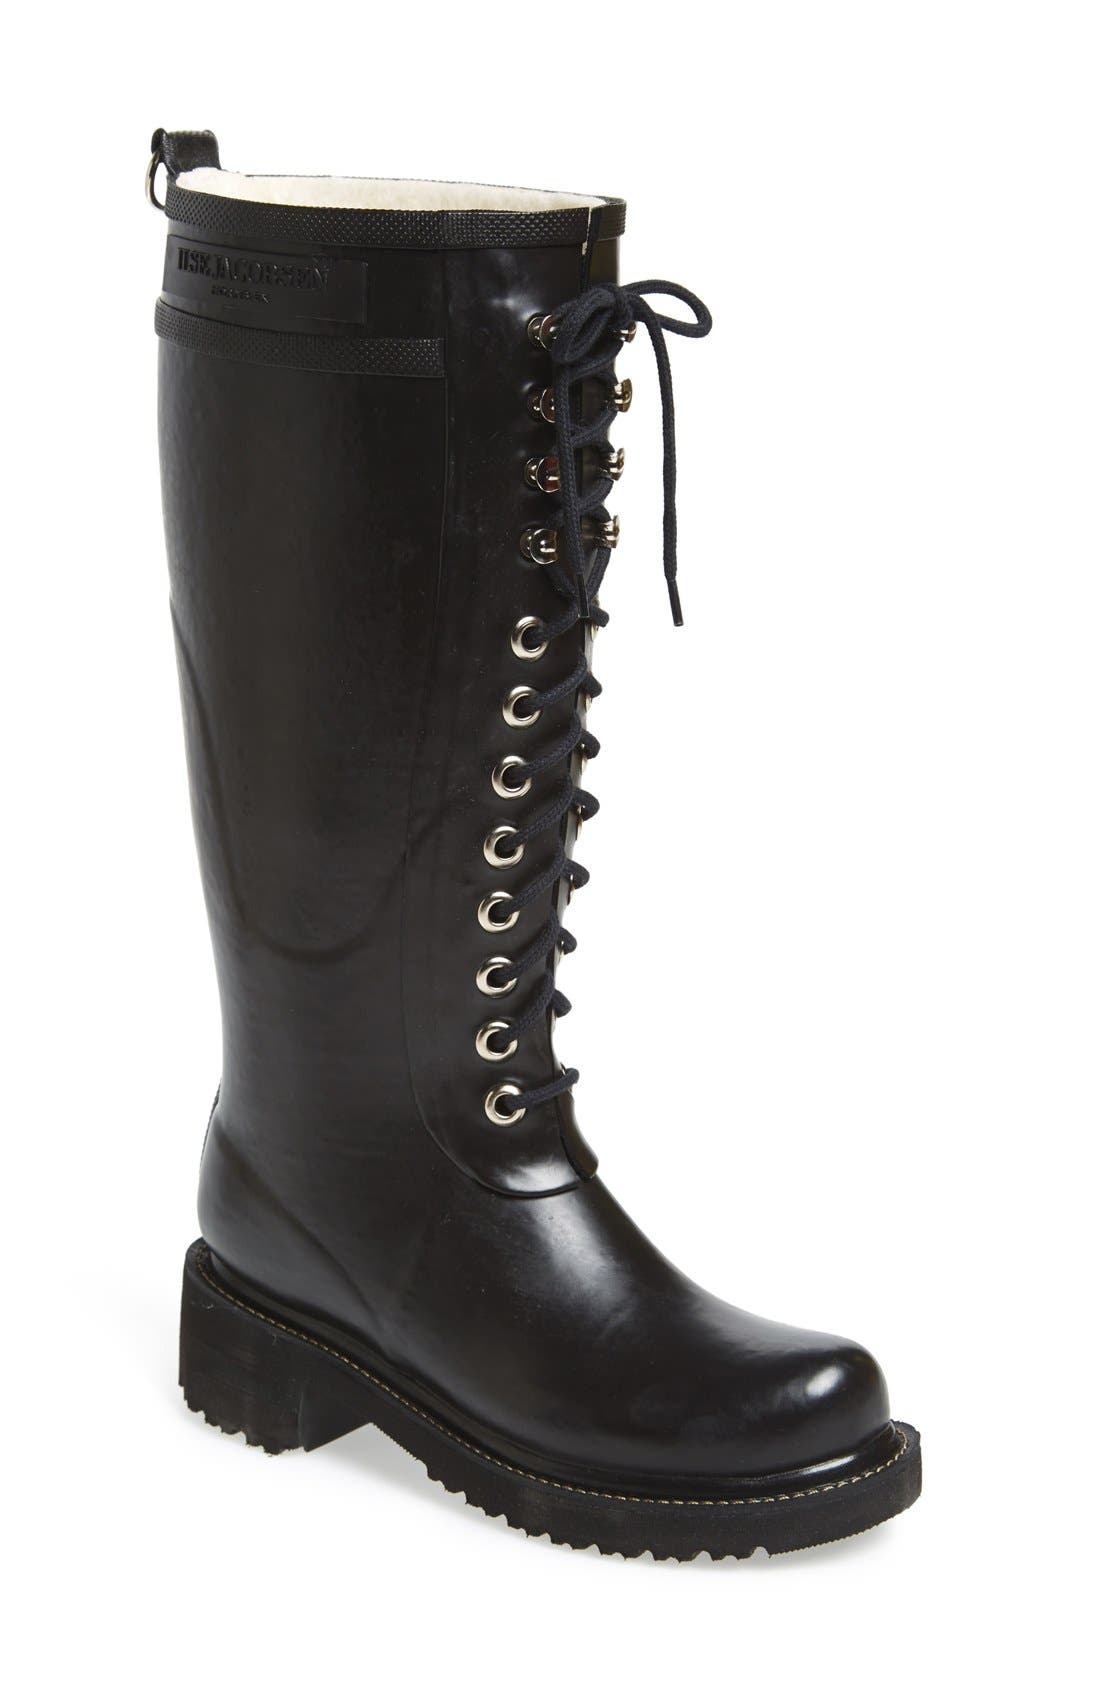 Alternate Image 1 Selected - Ilse Jacobsen Waterproof Lace-Up Snow/Rain Boot (Women)